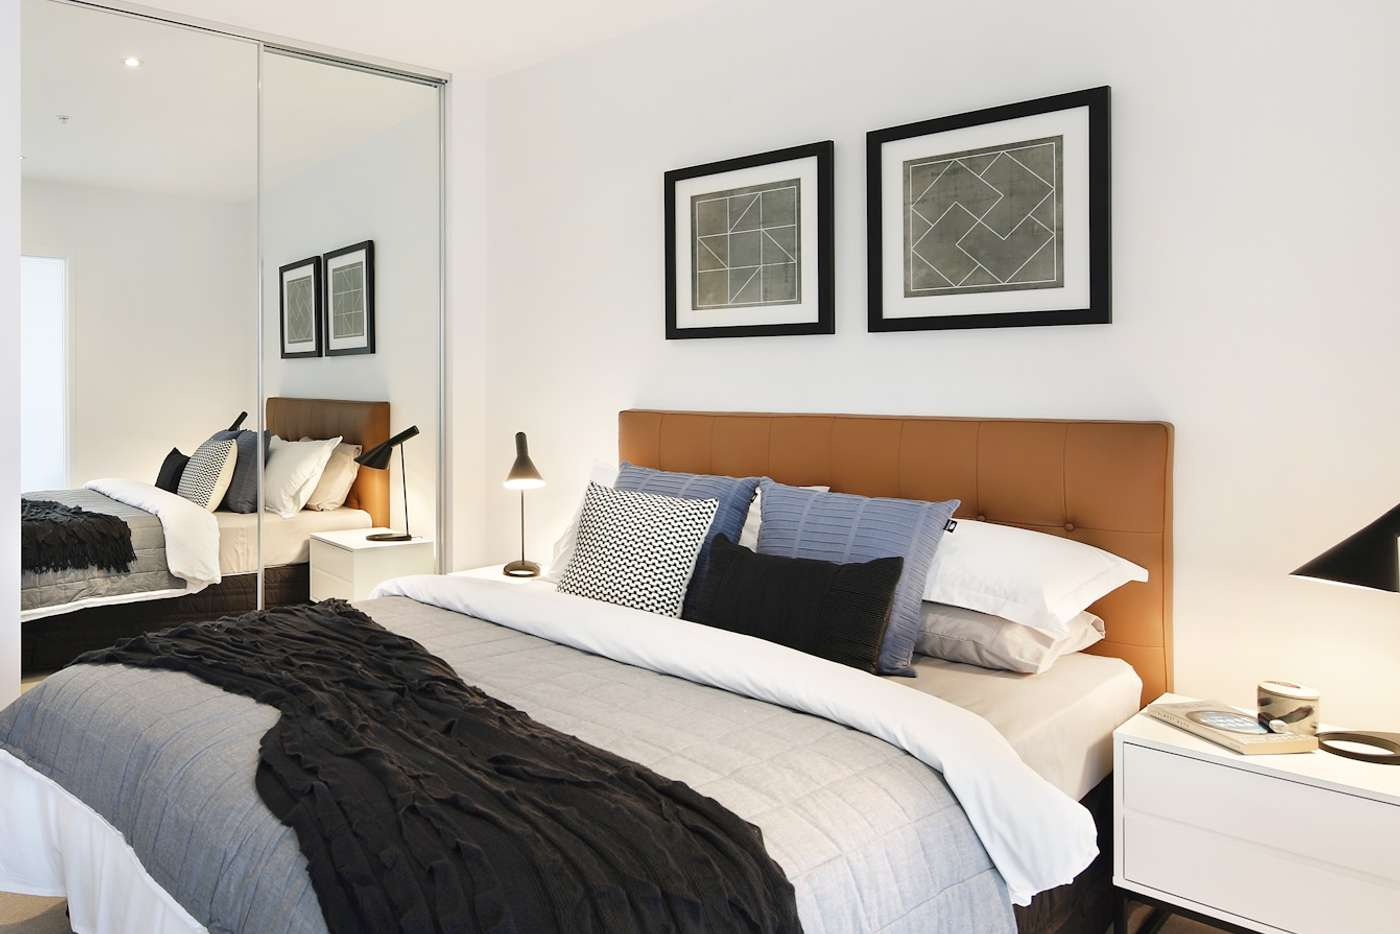 Main view of Homely apartment listing, 2806/250 City Road, Southbank VIC 3006